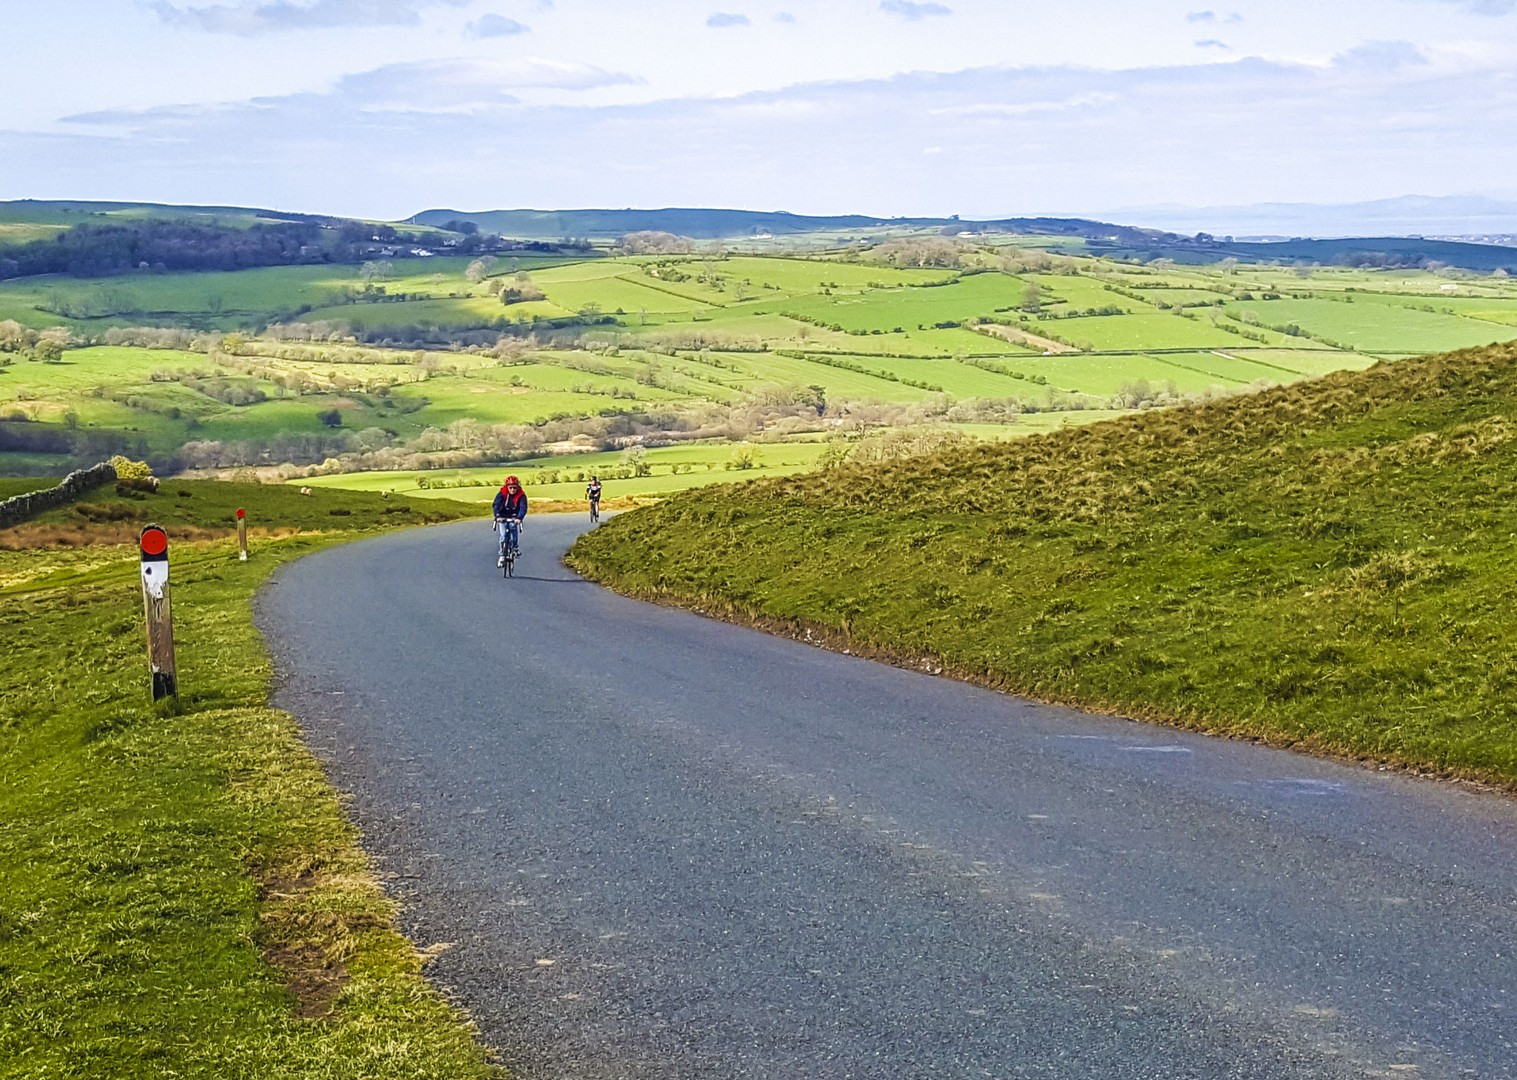 rolling-hills-british-countryside-lake-district-cycling-holiday-roads-skedaddle.jpg - UK - North Lake District Explorer - Guided Road Cycling Weekend - Road Cycling